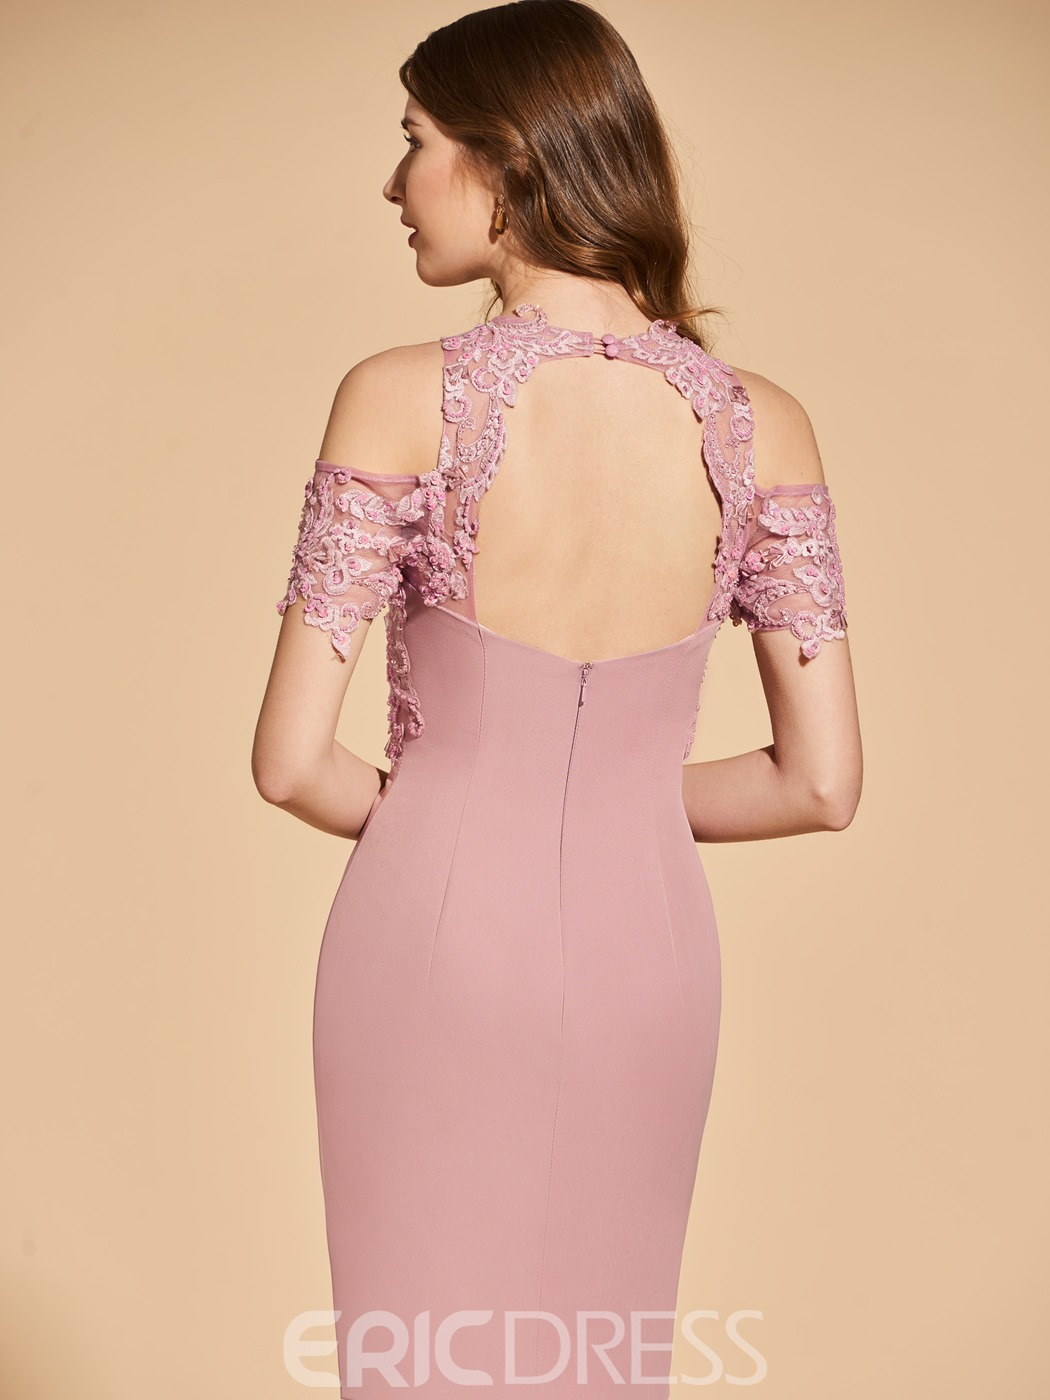 Ericdress Sheath Cold Shoulder Short Sleeve Bodycon Homecoming Dress With Applique